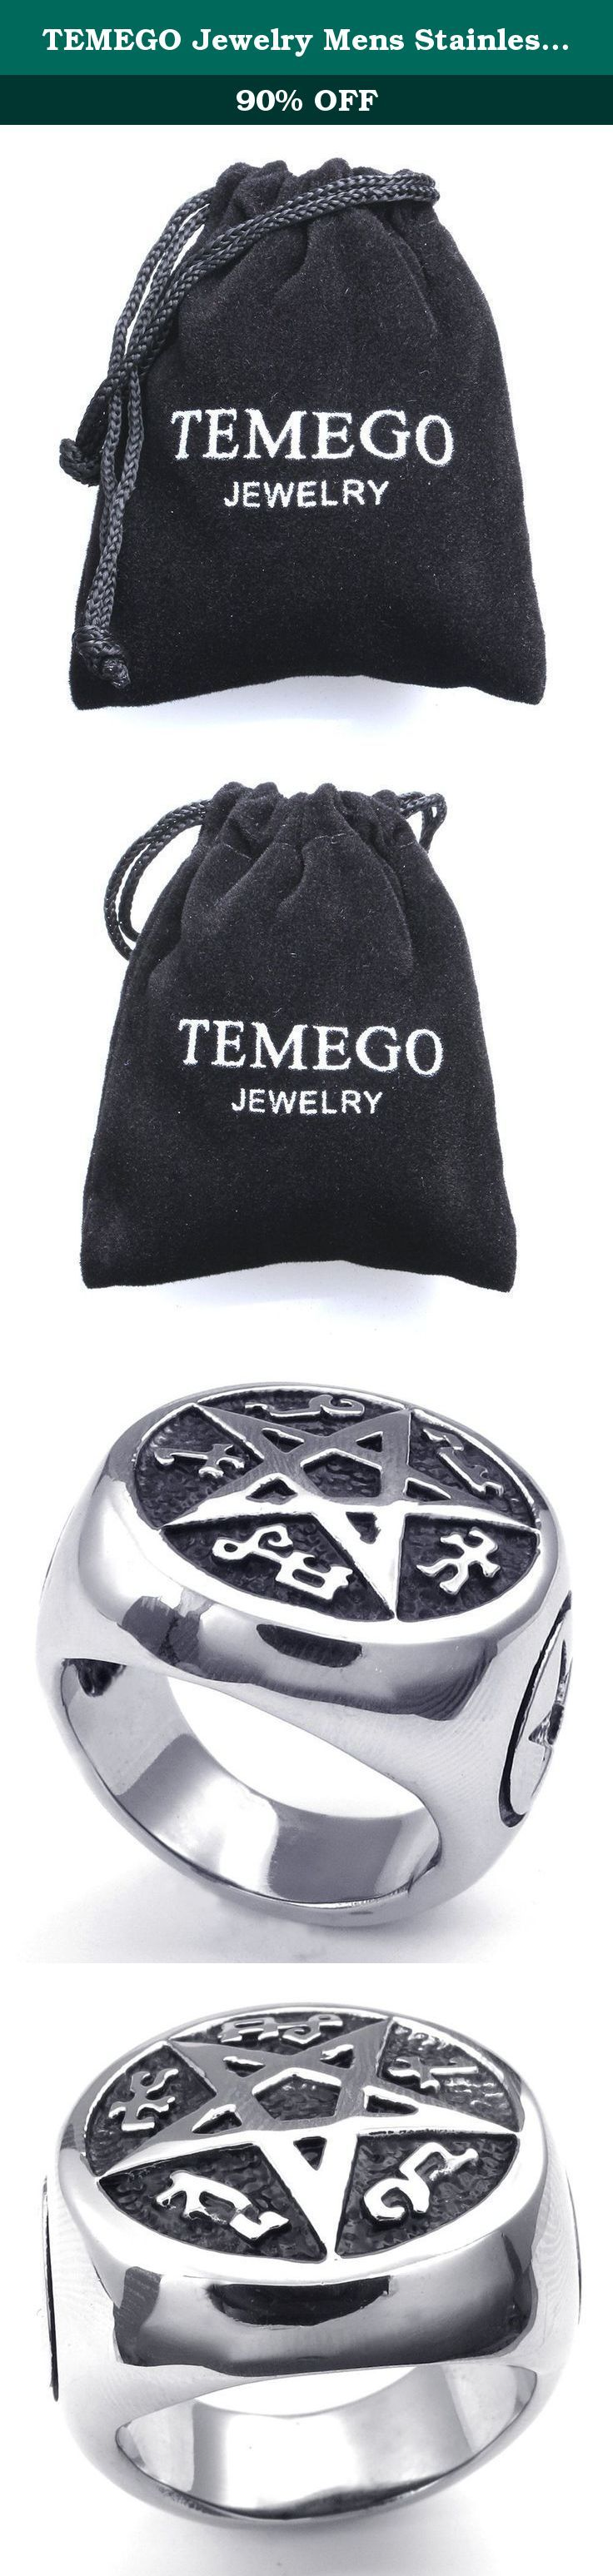 TEMEGO Jewelry Mens Stainless Steel Ring, Vintage Pentagram Band, Black Silver. Stainless Steel Jeweley has gained increasing popularity in men's jewelry. It does not tarnish and oxidized, which can last longer than other types of jewelry. Stainless steel jewelry has an amazing property of anti-allergice since they are often made without nickel.